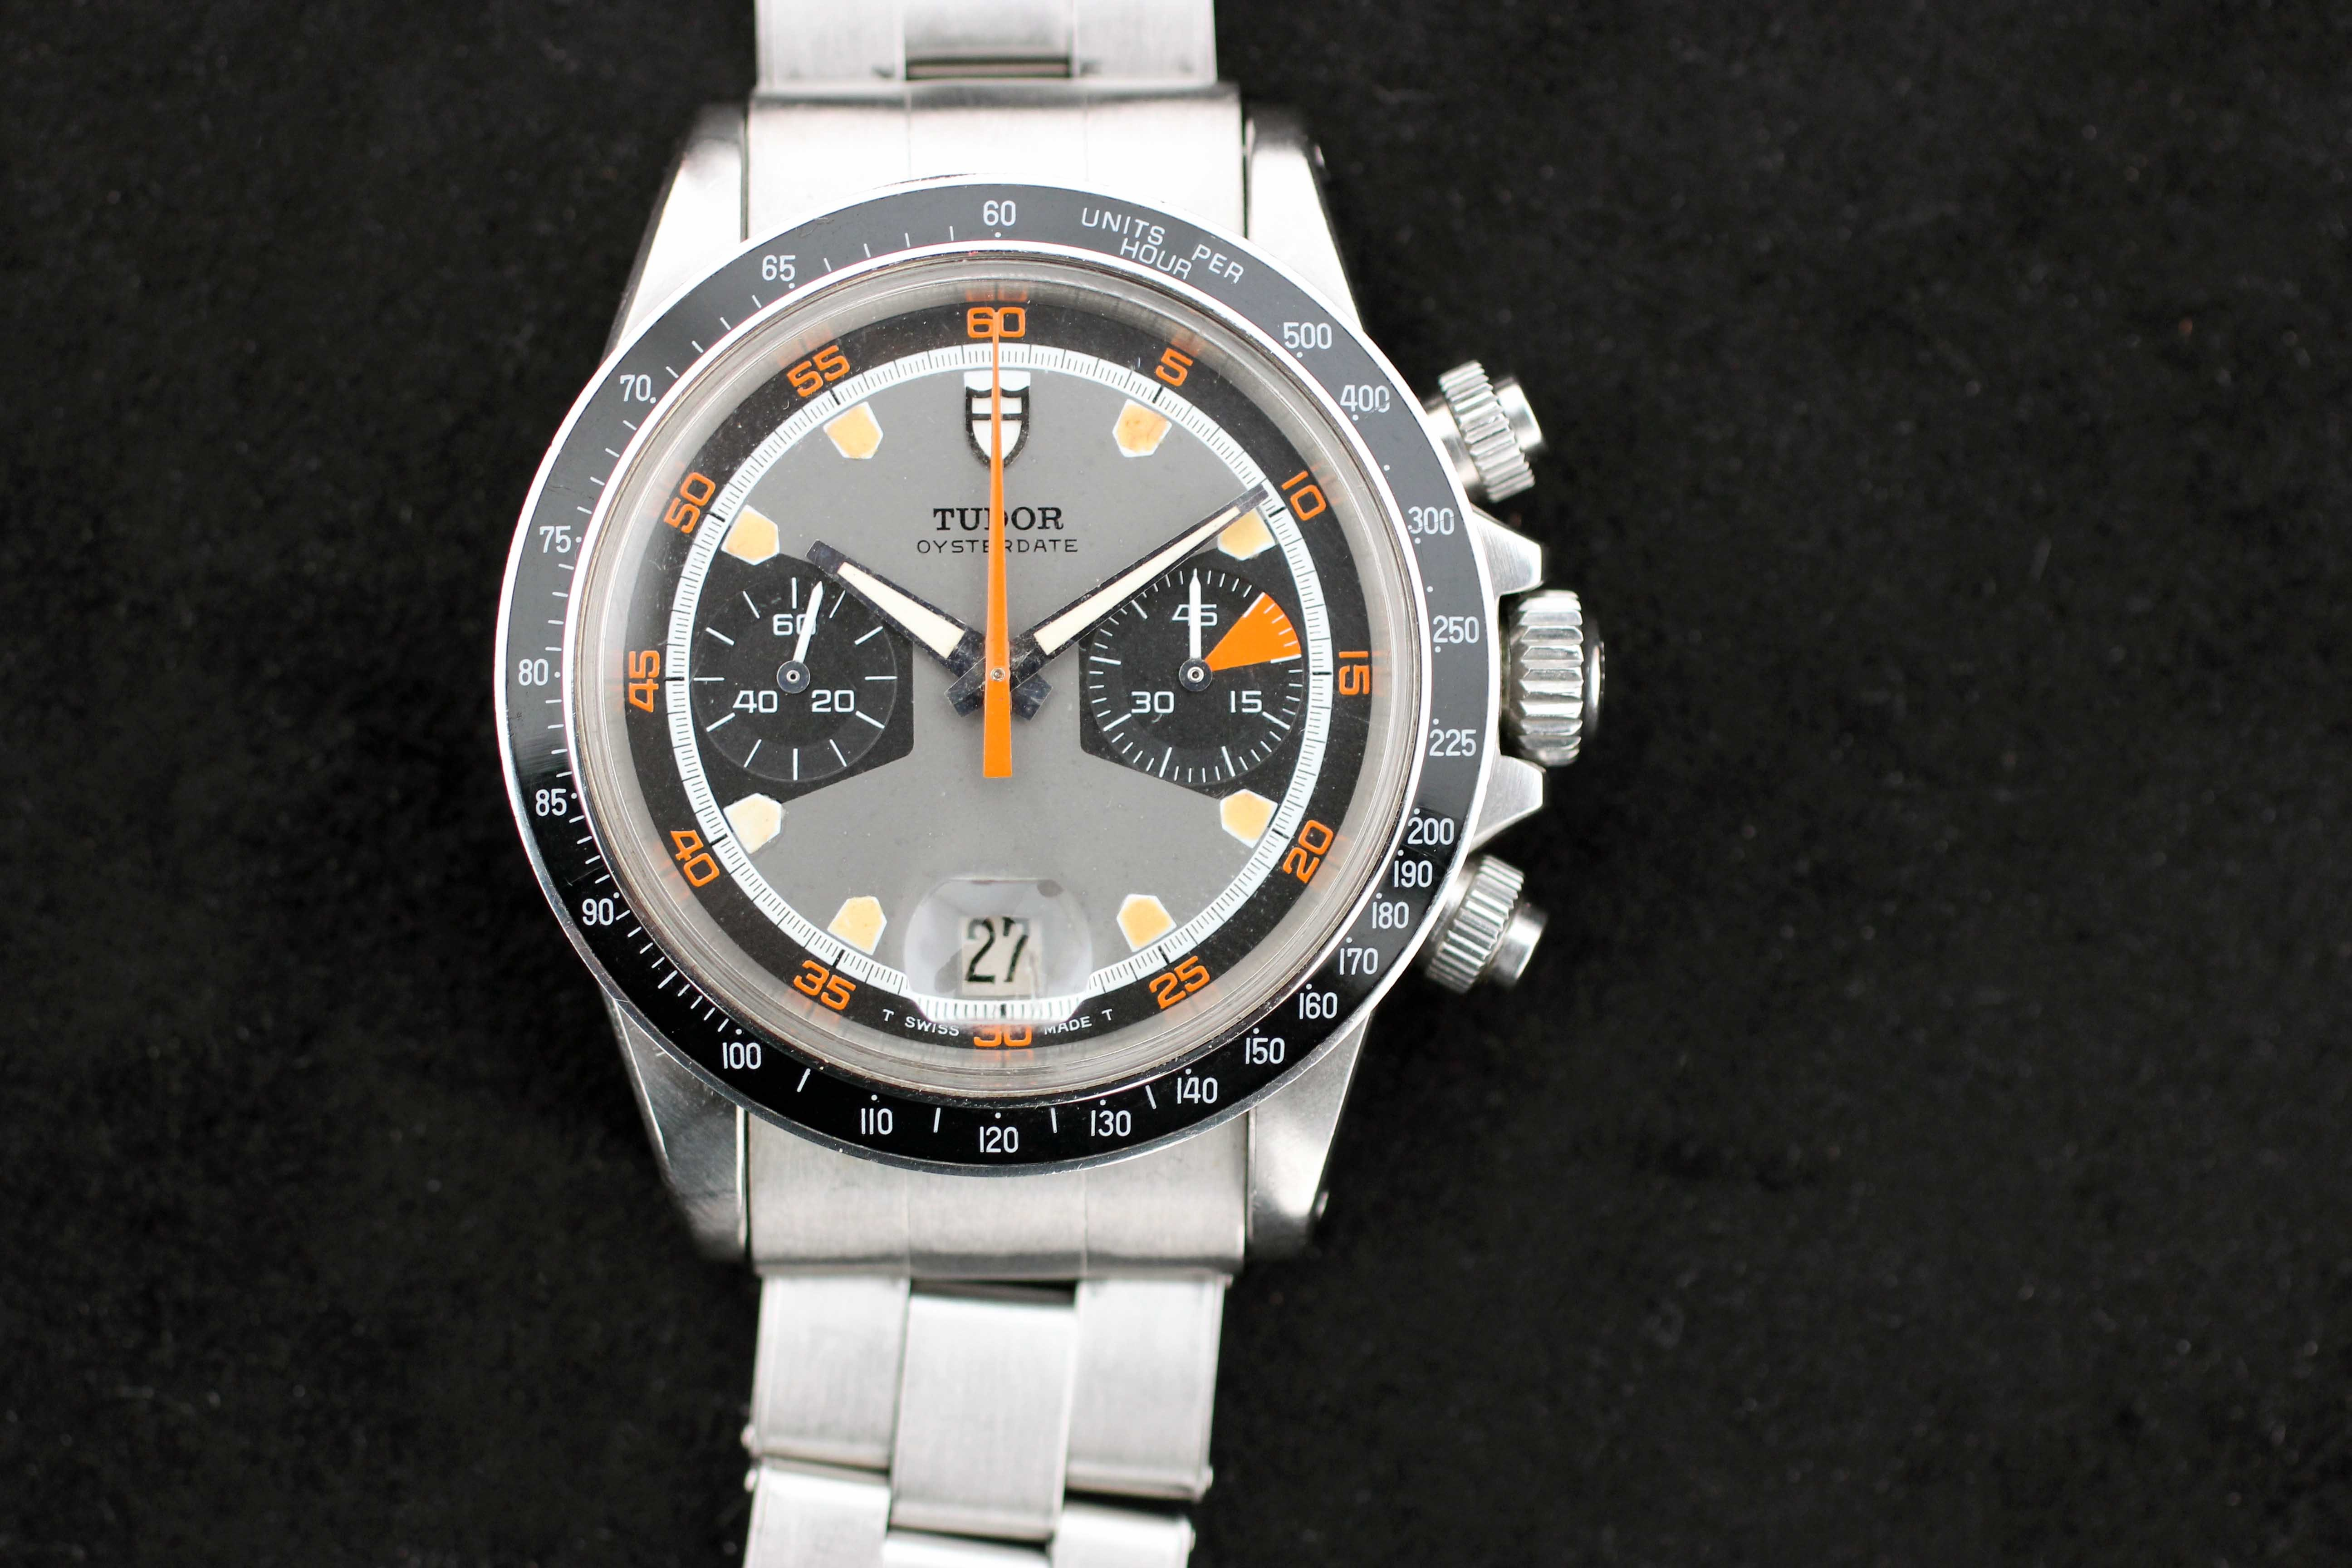 Recapping The 88 Epic Stainless Steel Chronographs Sale At Phillips, A 100% Auction, With Several Massive Hits, Strong Showing From Niche Brands Recapping The 88 Epic Stainless Steel Chronographs Sale At Phillips, A 100% Auction, With Several Massive Hits, Strong Showing From Niche Brands IMG 8615